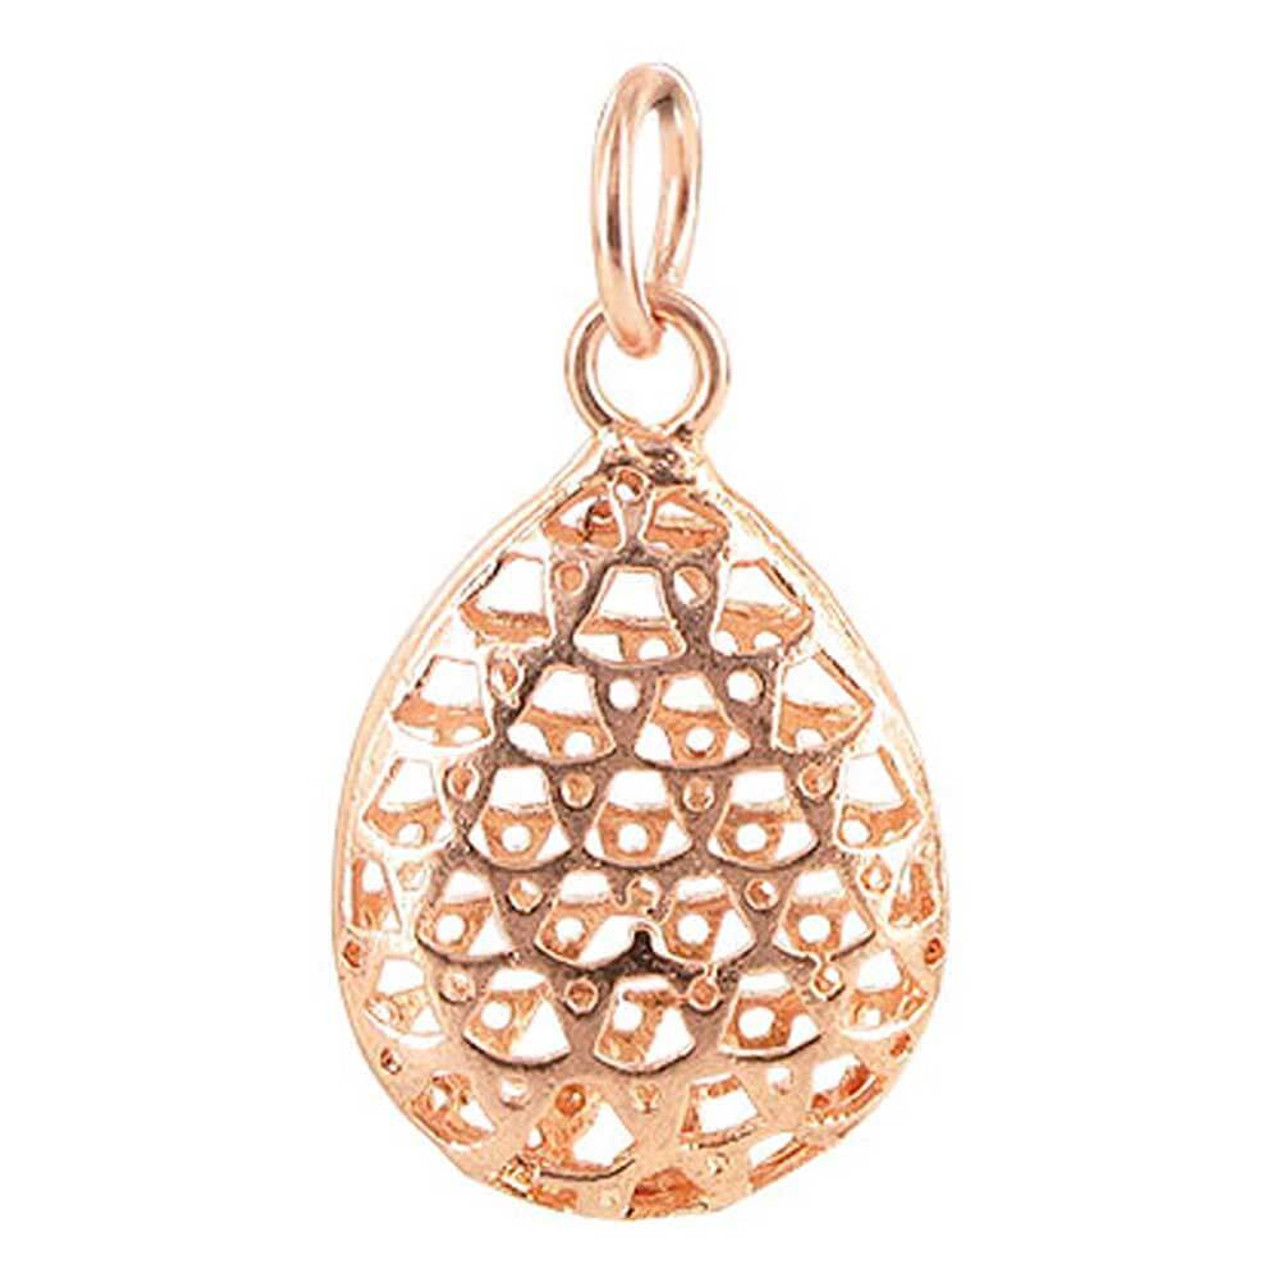 Copper Rose 17mm x 22mm Oval Shaped Intricate Polish Finished Dangle Pendant